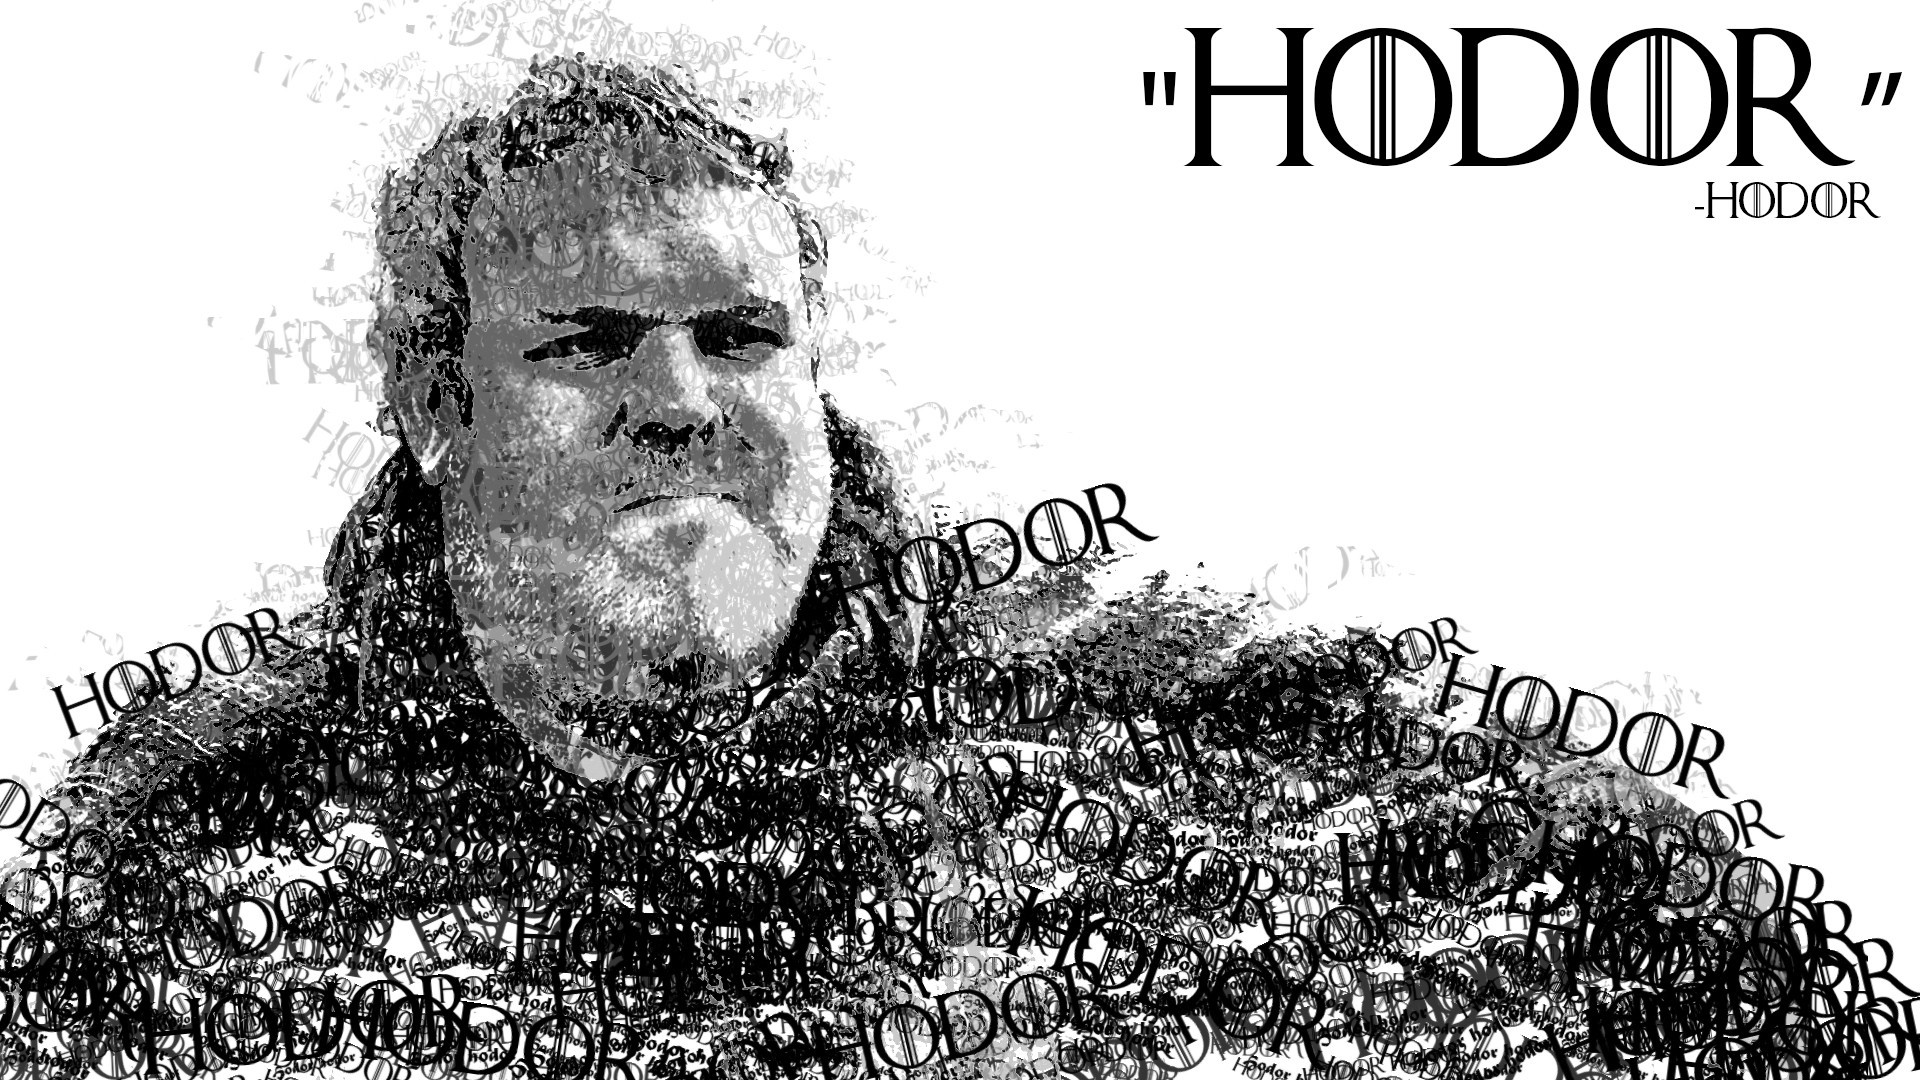 quotes_game_of_thrones_hodor_1920x1080_56891.jpg